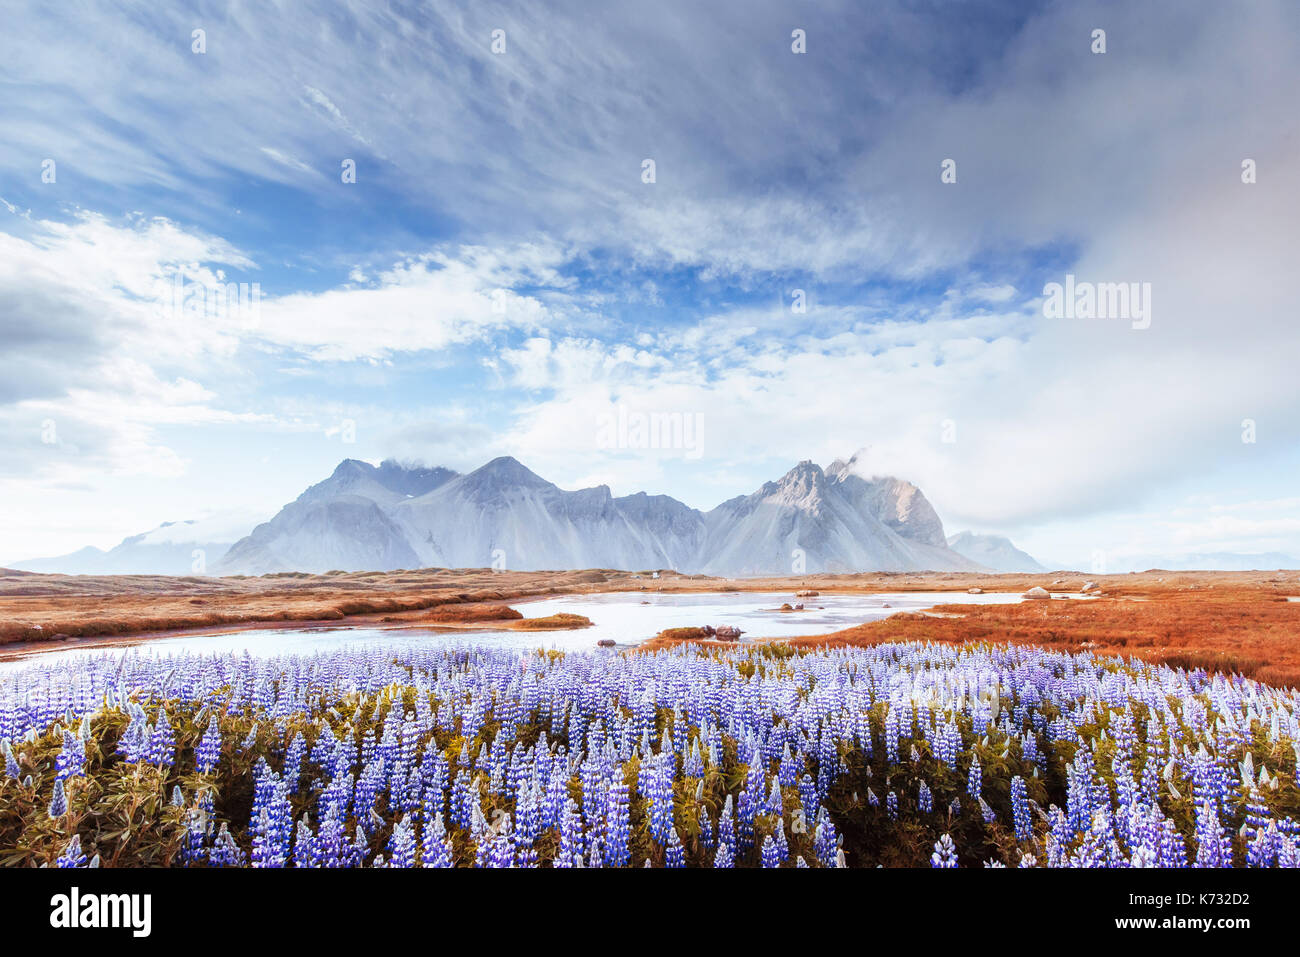 Picturesque views of the river and mountains in Iceland. - Stock Image